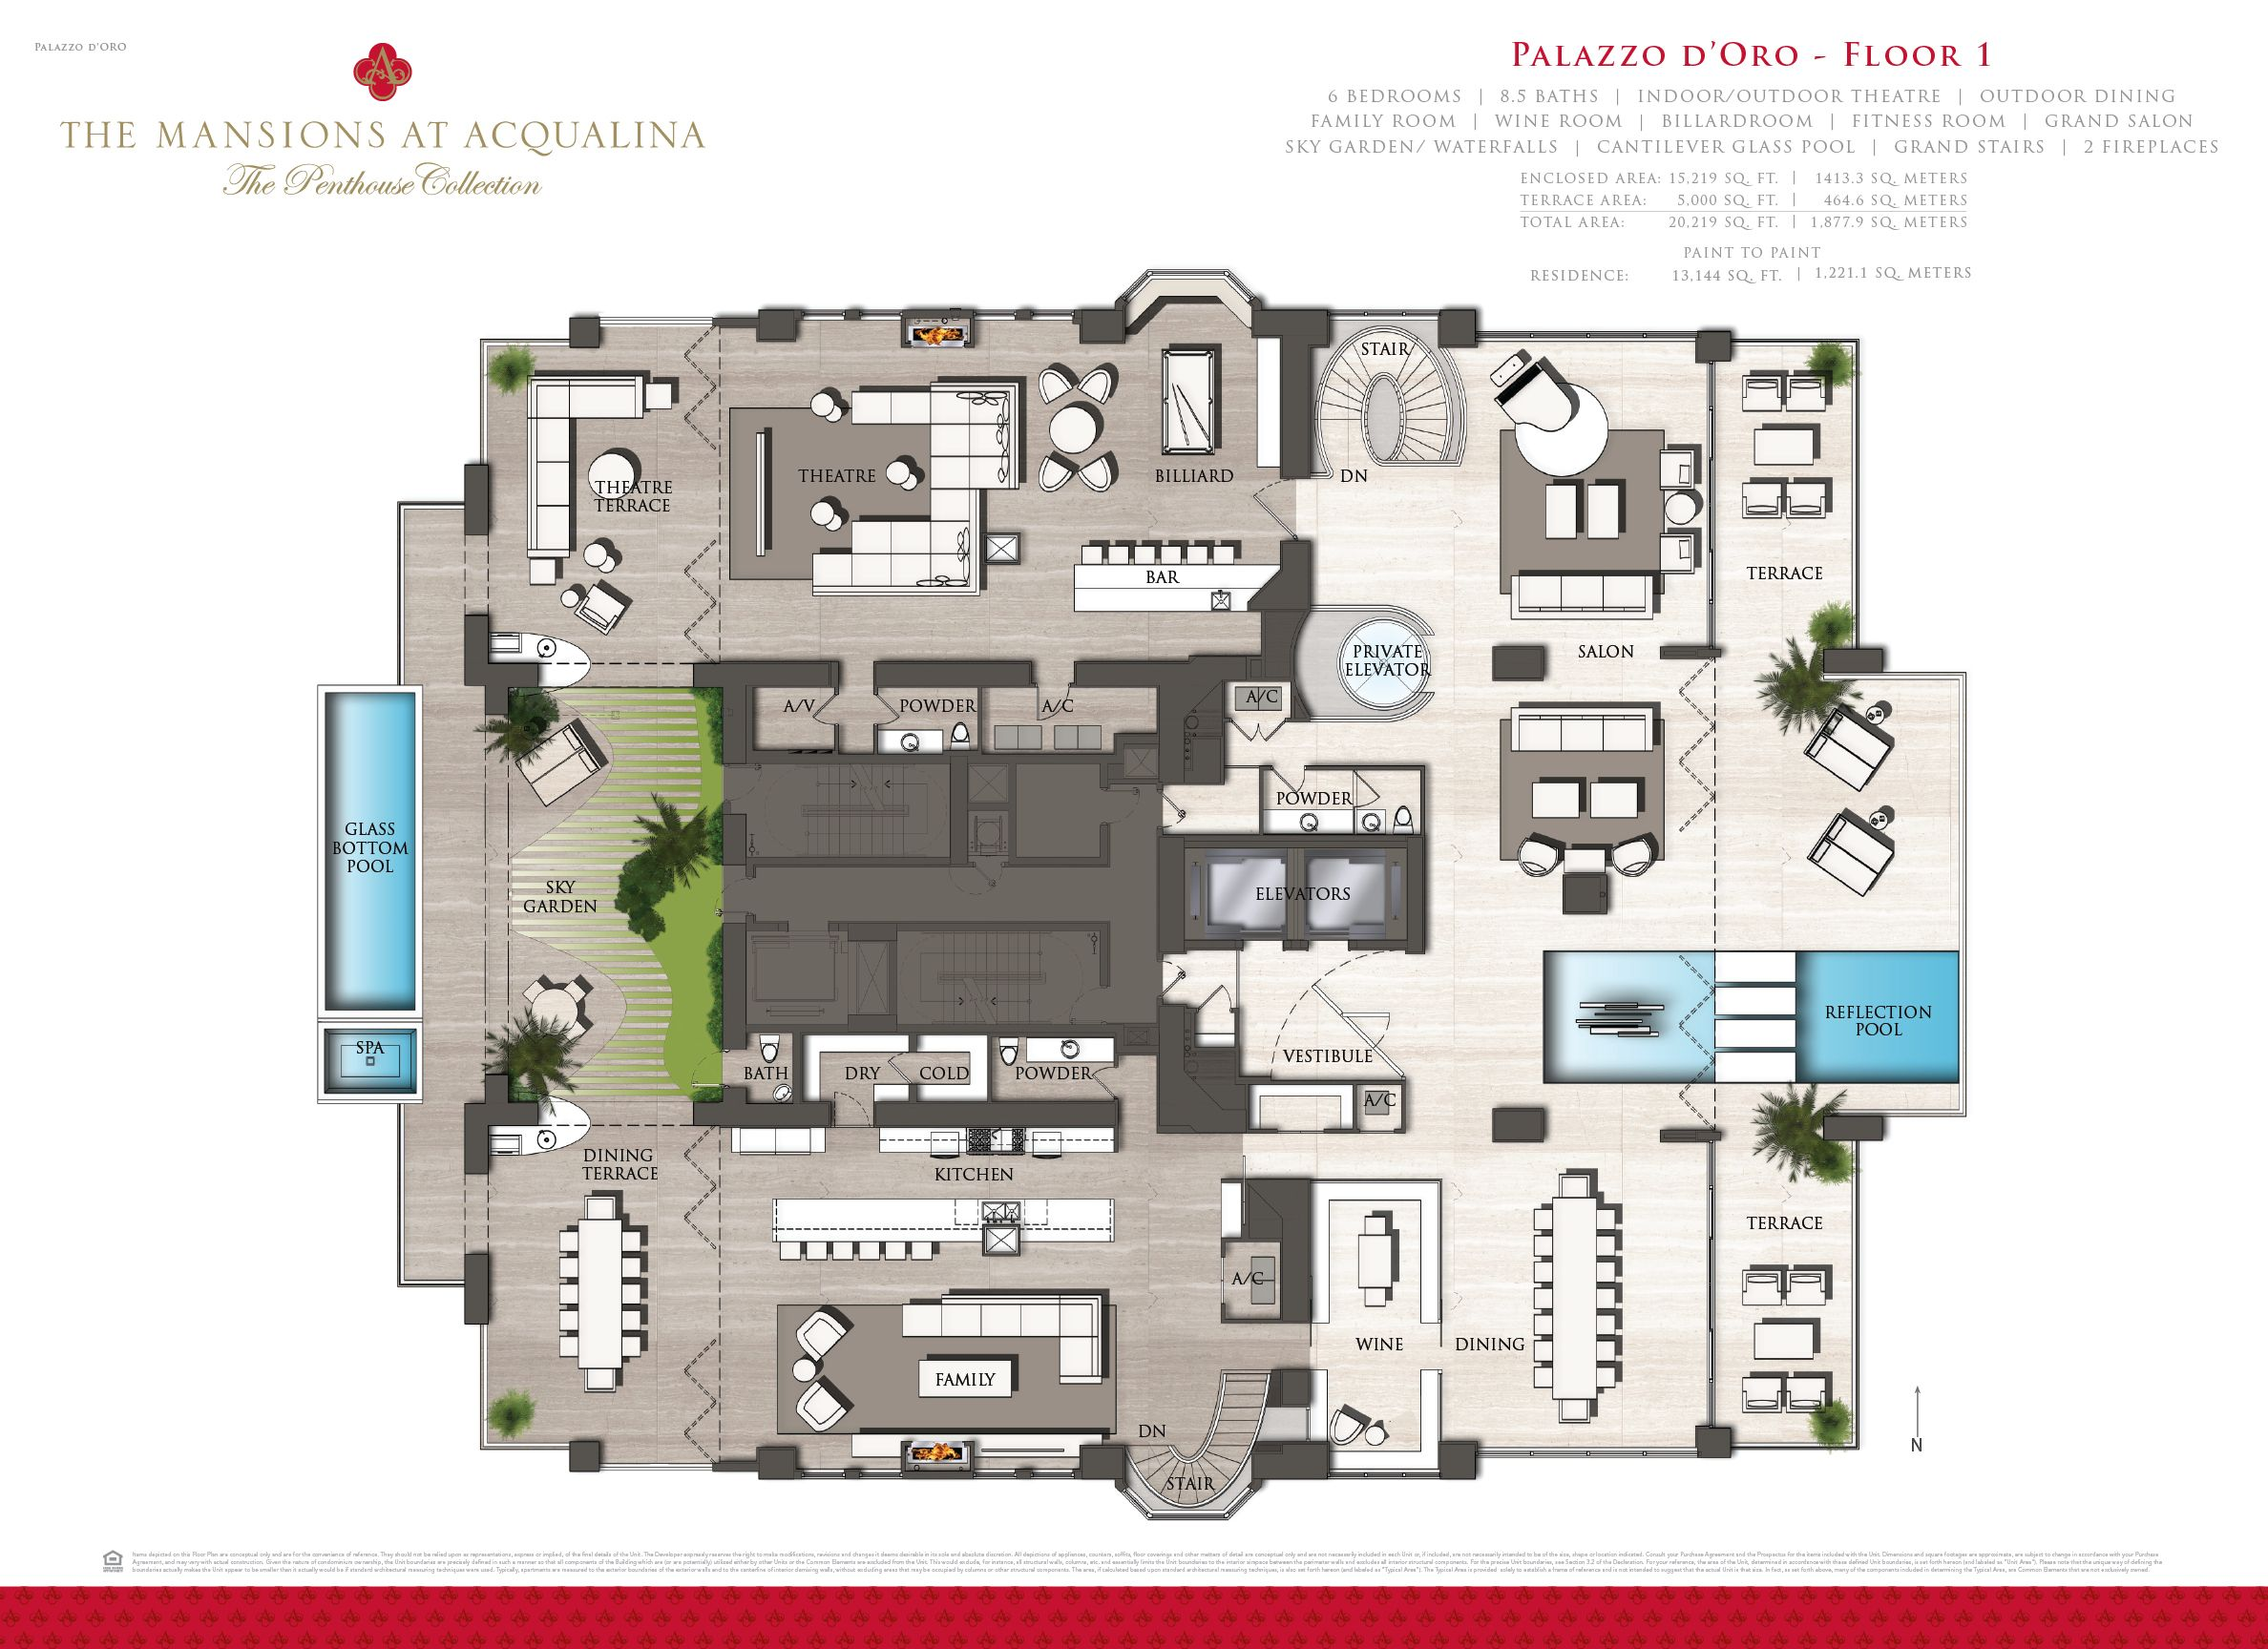 Mansions at acqualina penthouse hits the market for 55m mindboggling reveals curbed miami